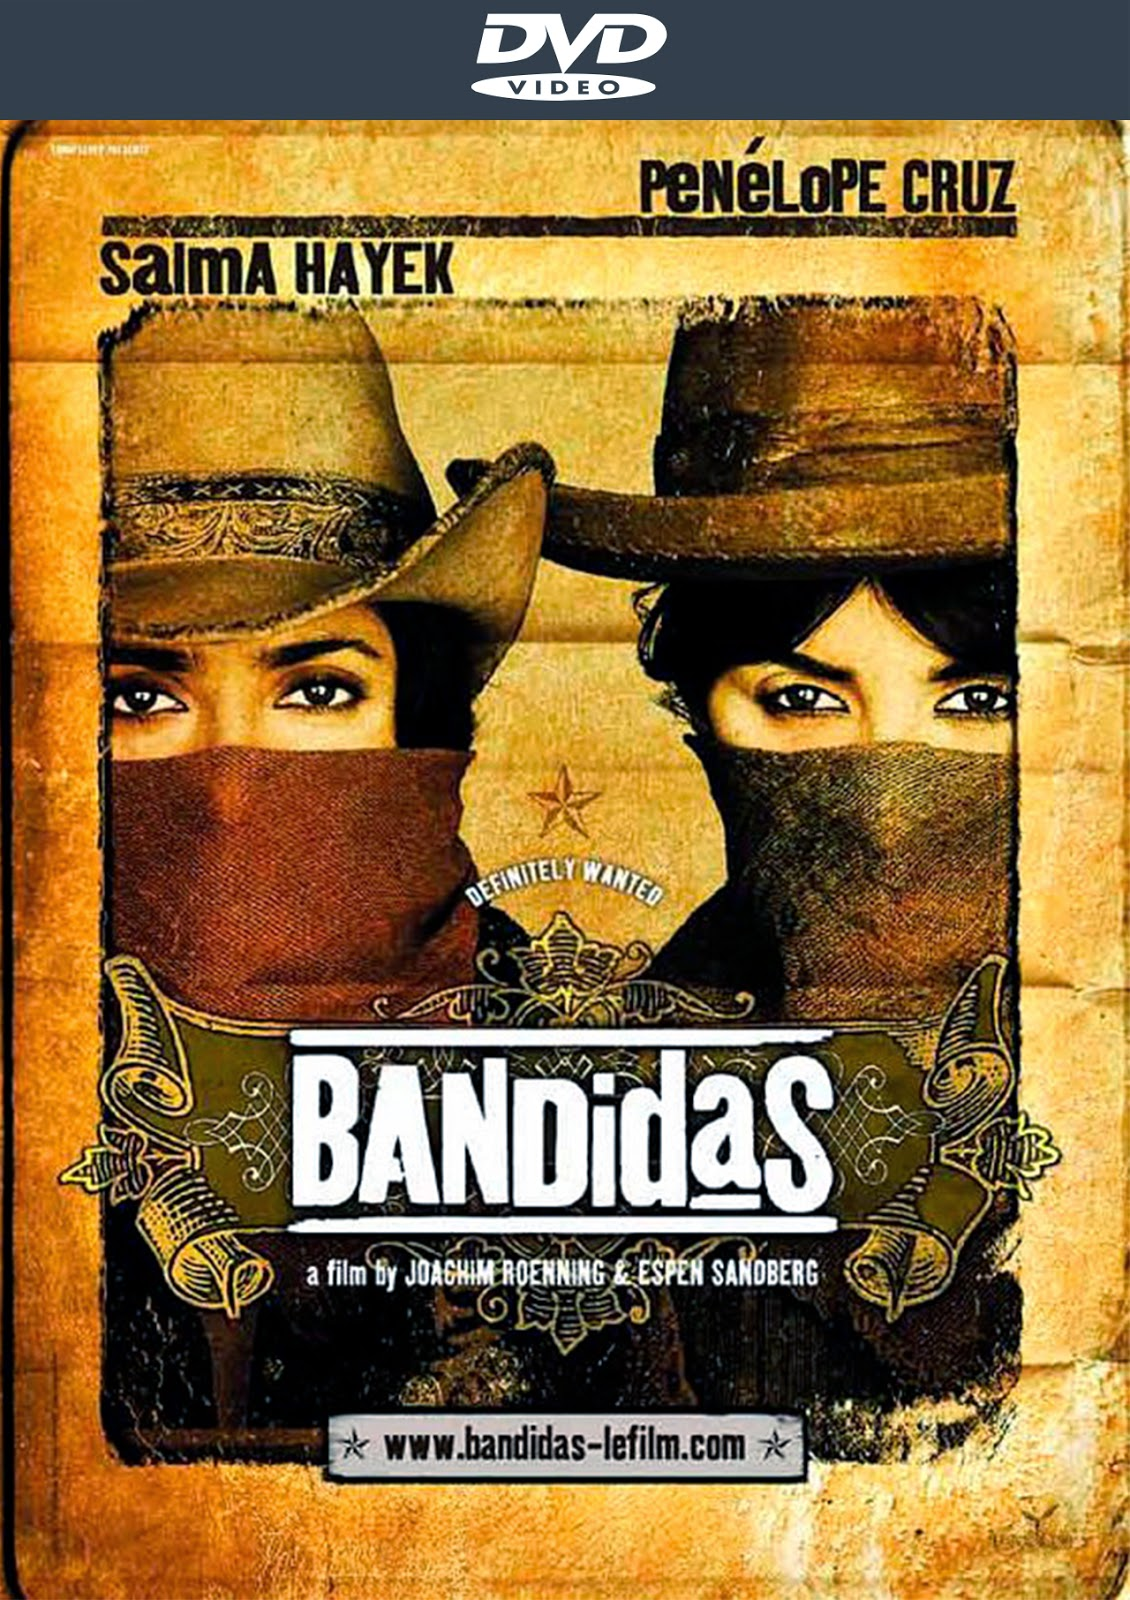 Bandidas [2006] [Latino] [DVD Full]